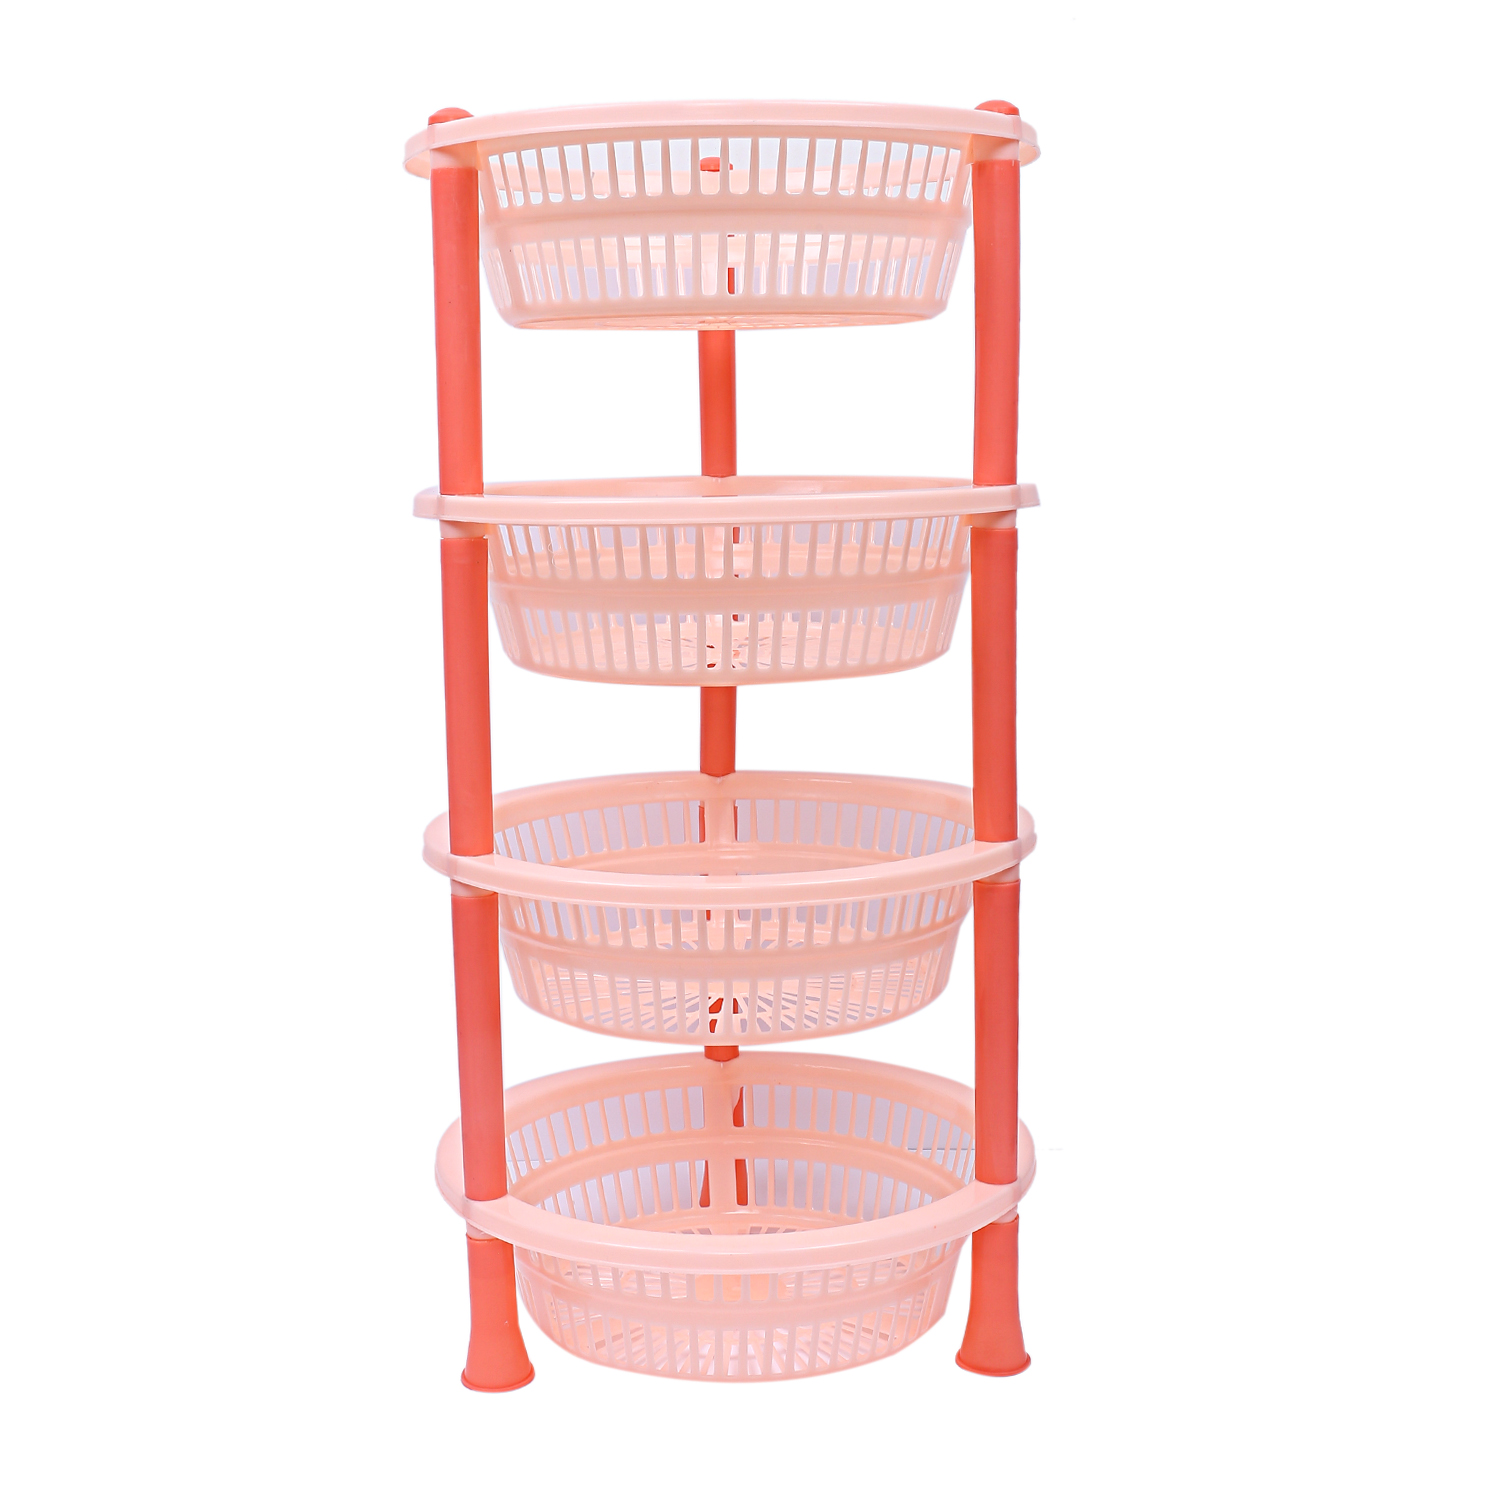 Kuber industries Plastic 4 Layer Multi-purpose Kitchen Storage Basket Rack (Beige)-CTKTC13207